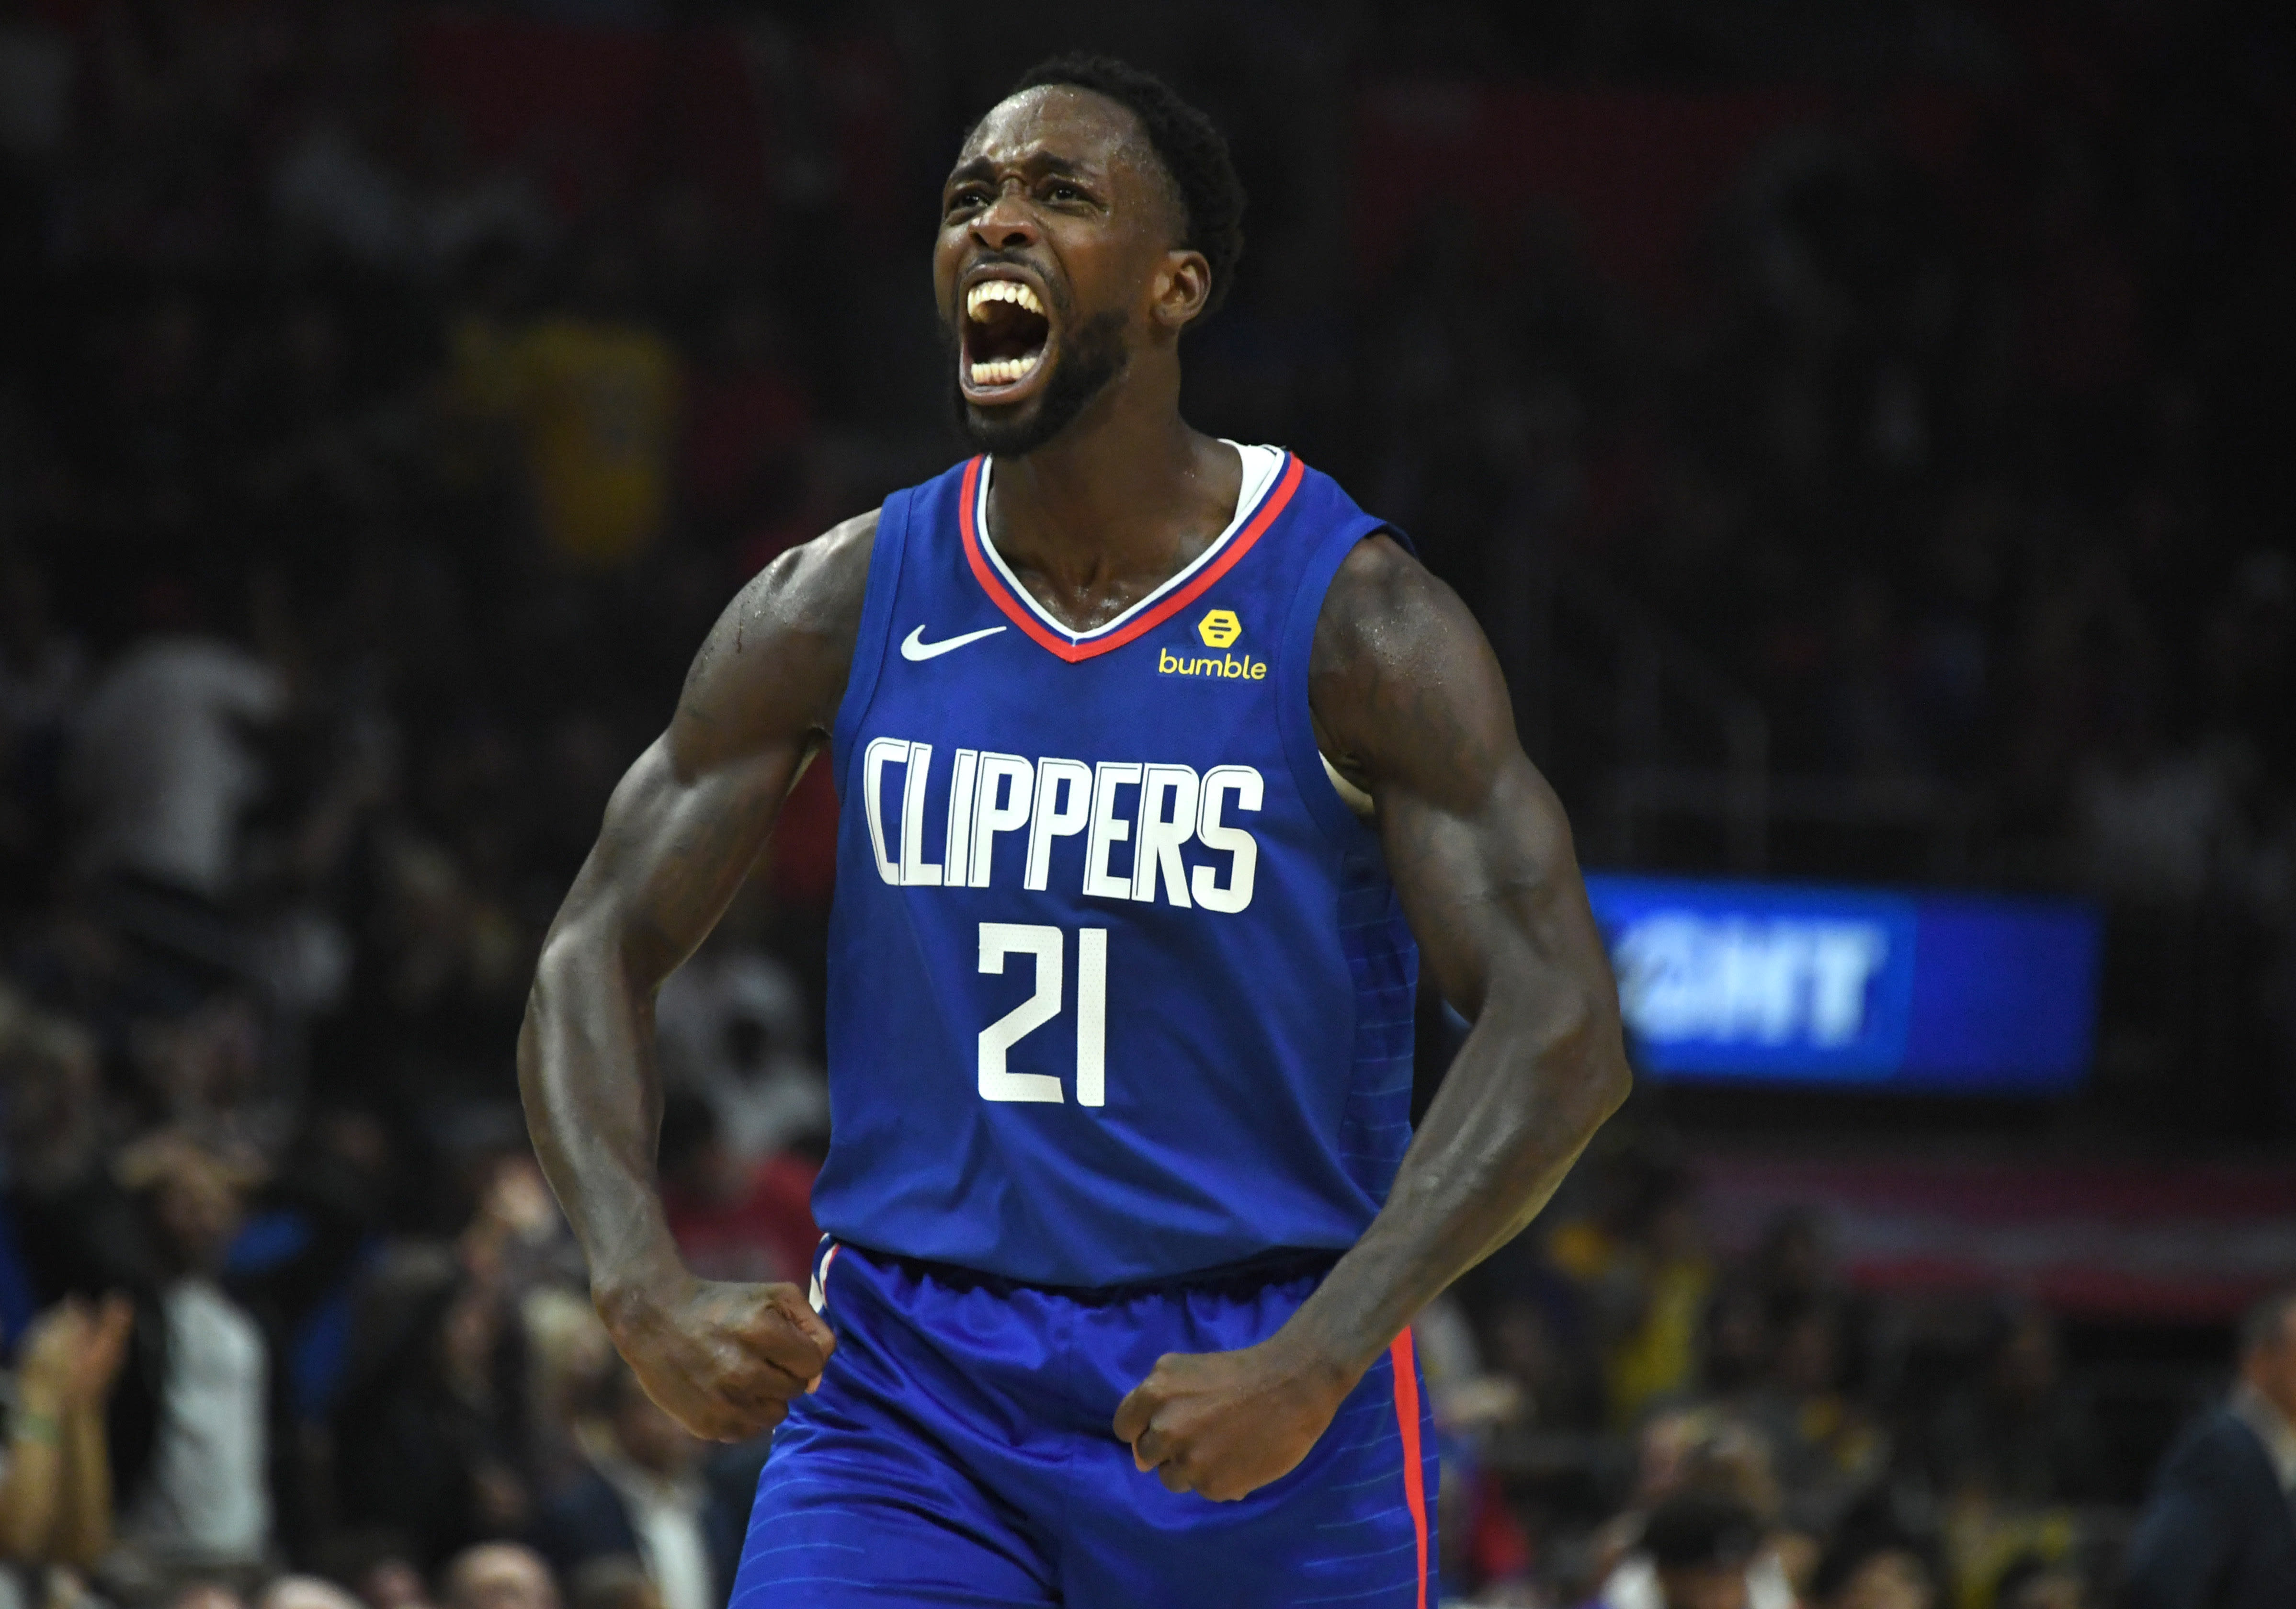 It's Early, But the Clippers Look Like the Team To Beat After Beating the Lakers